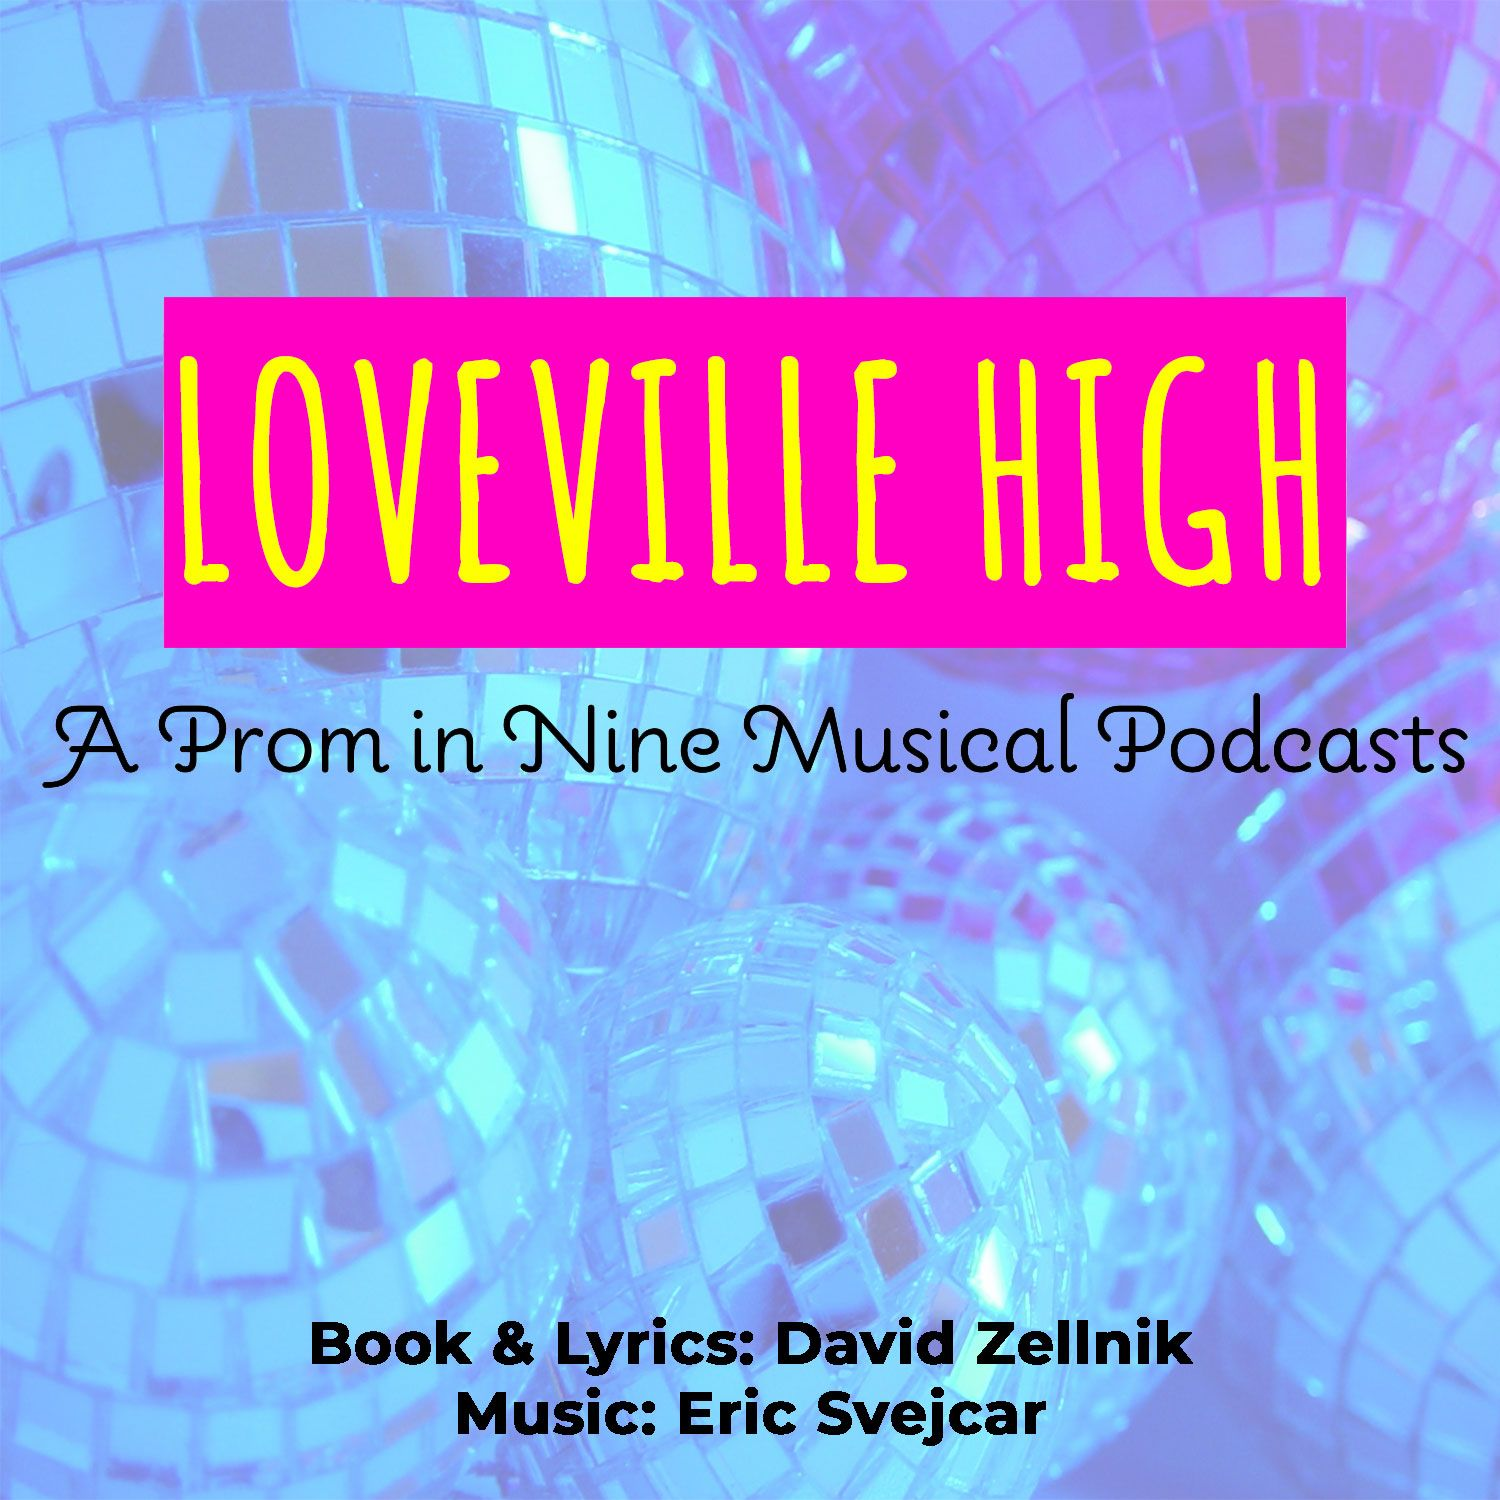 Loveville High